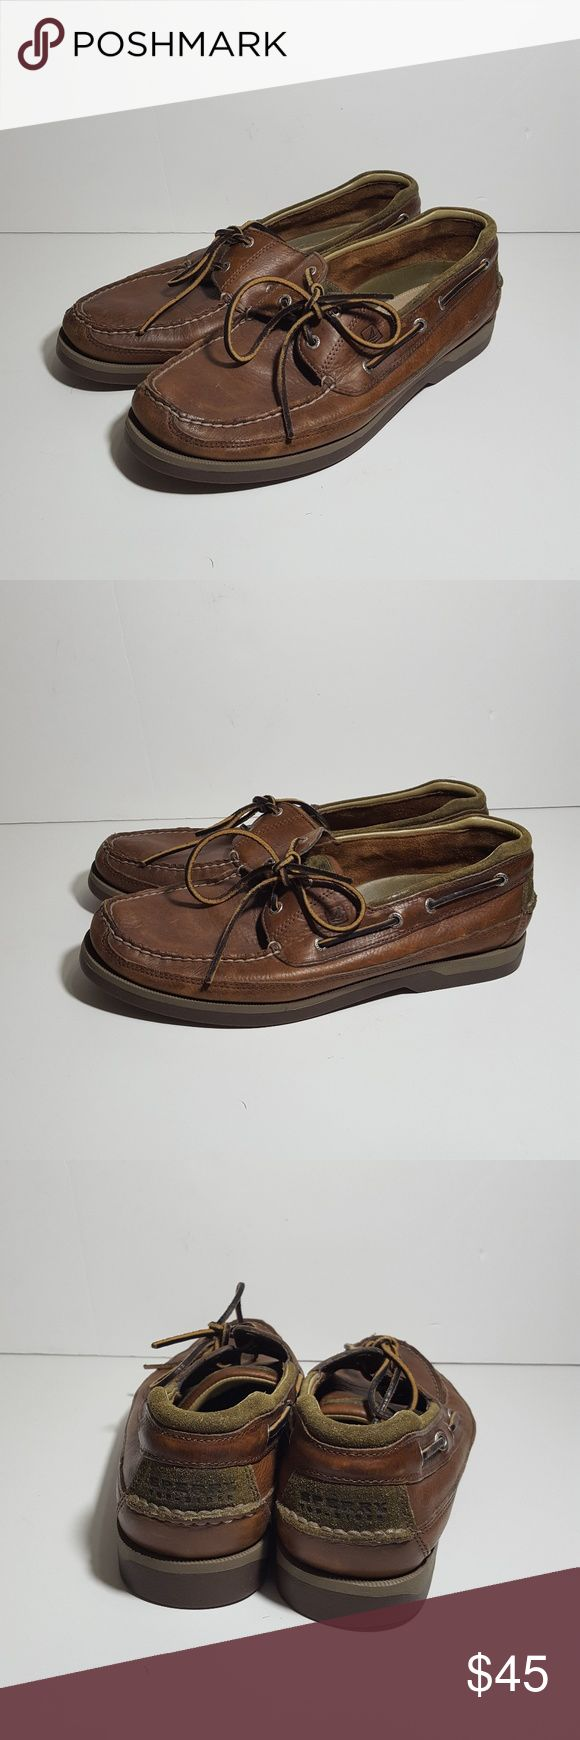 Sperry Mens Sz 12M Mako Dock Boat Shoes Brown Sperry Top-Sider Mako Collection mens shoes. Size 12M Leather boat/dock shoes. Leather. Brown. Used condition Sperry Top-Sider Shoes Loafers & Slip-Ons